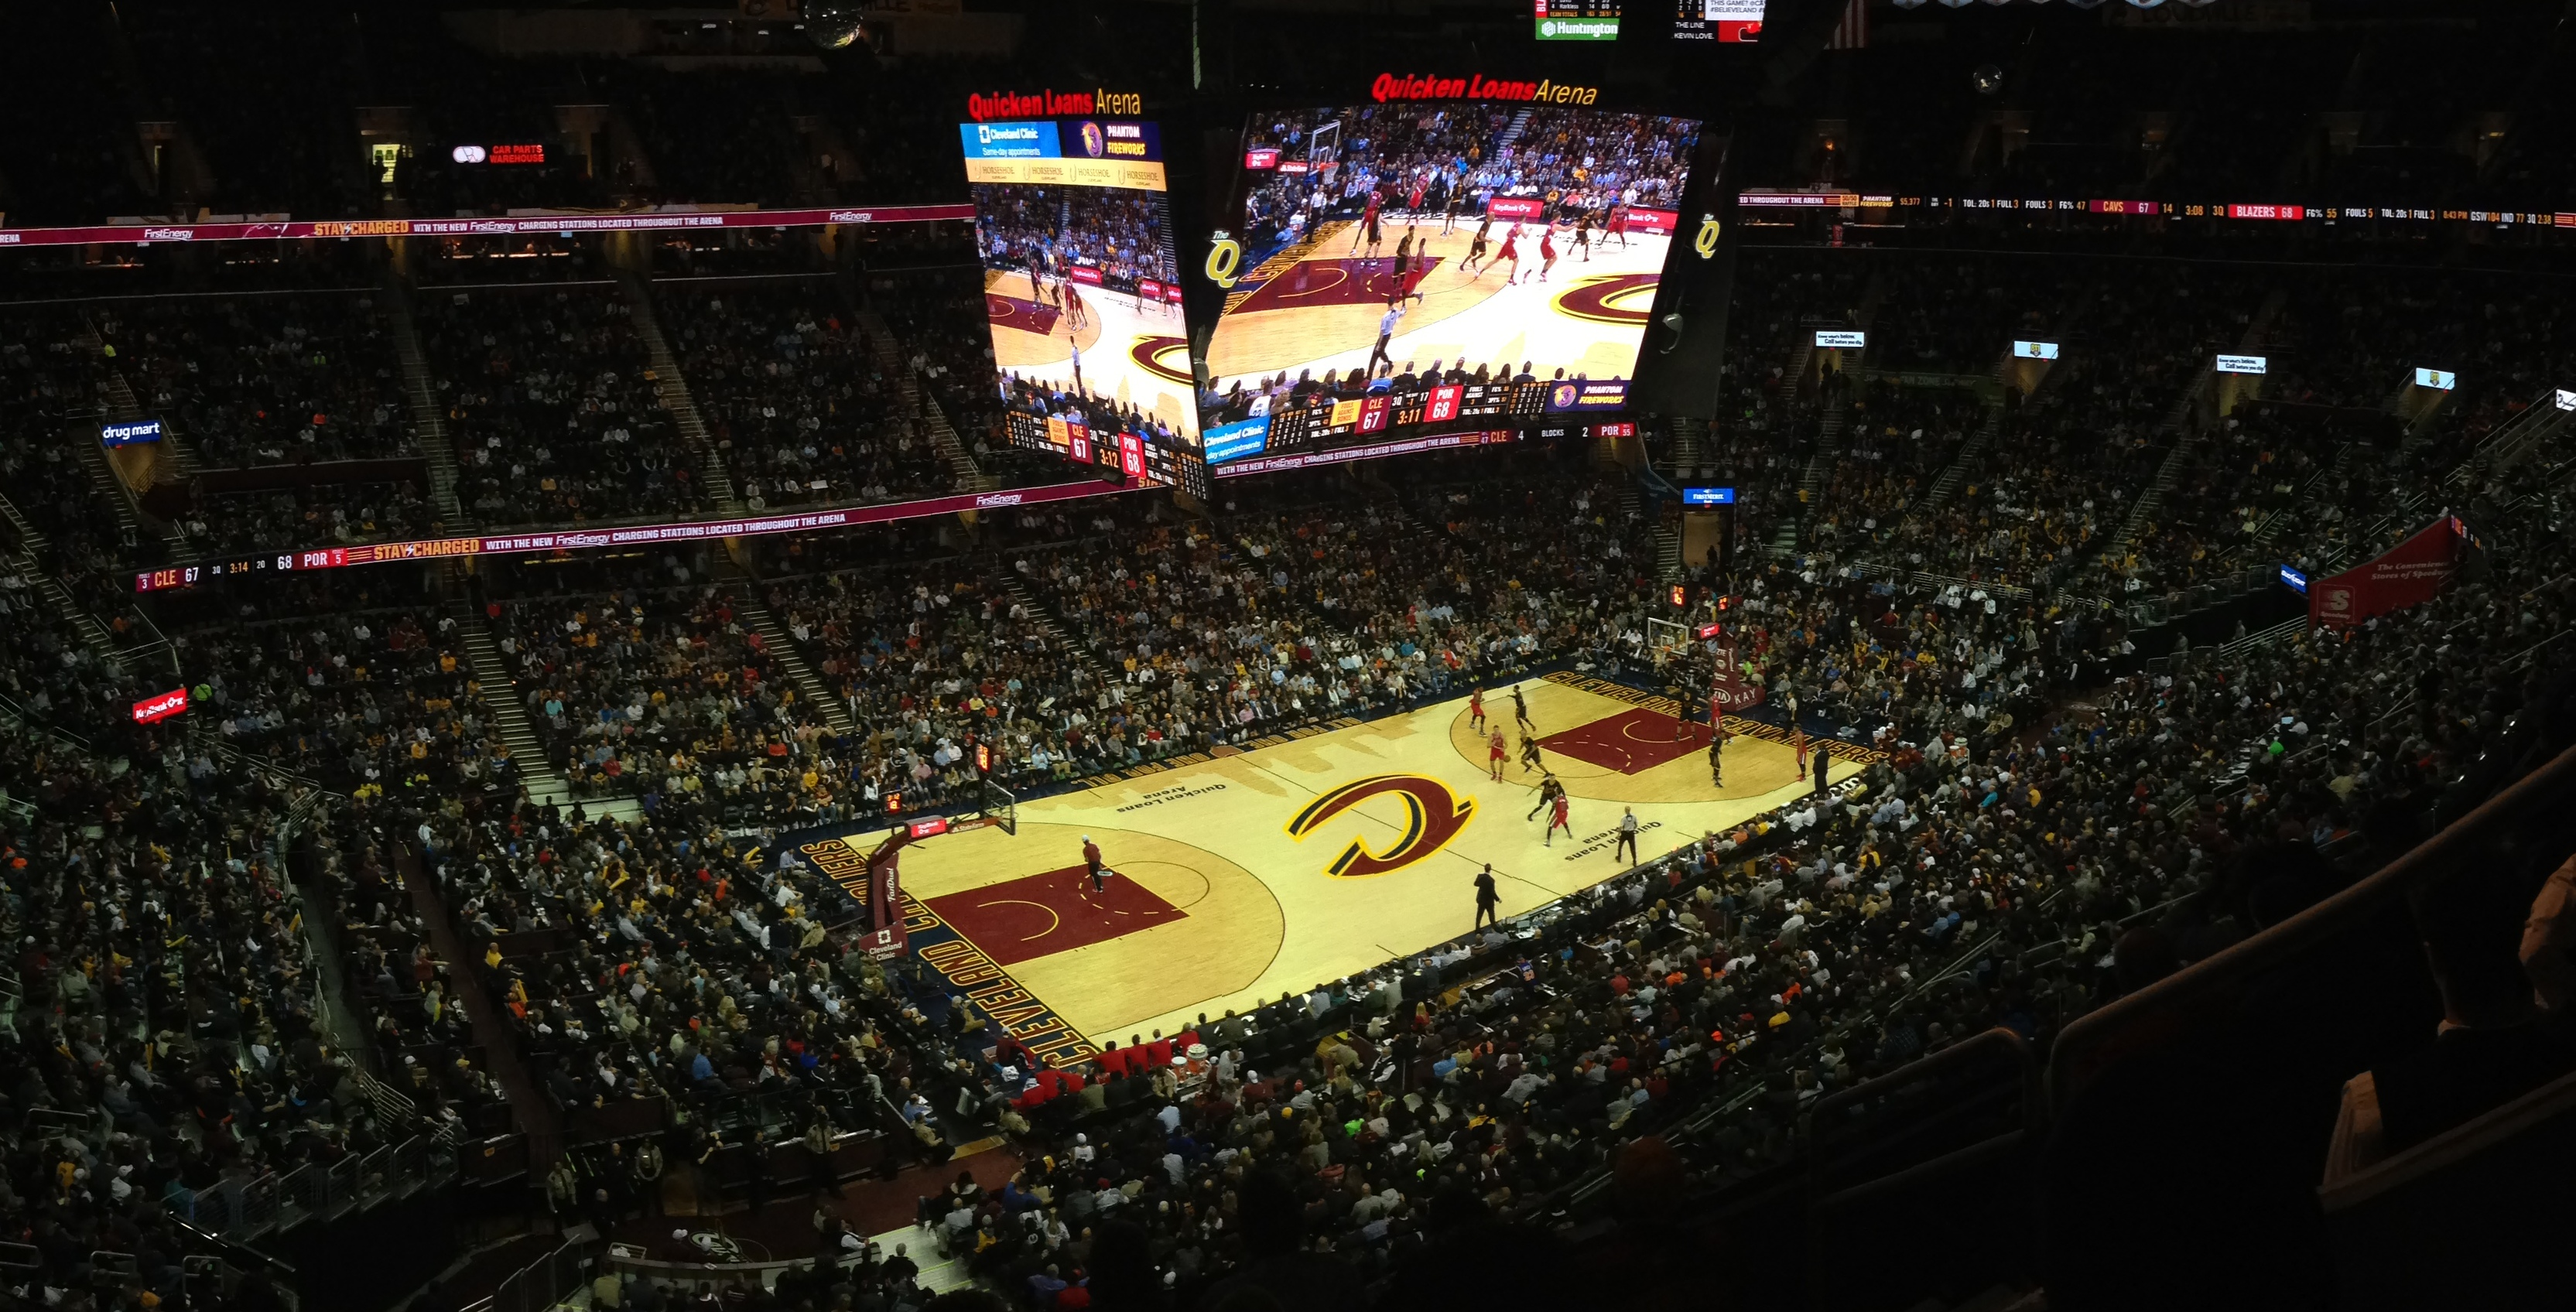 File:Quicken Loans Arena WV photo jpg - Wikimedia Commons